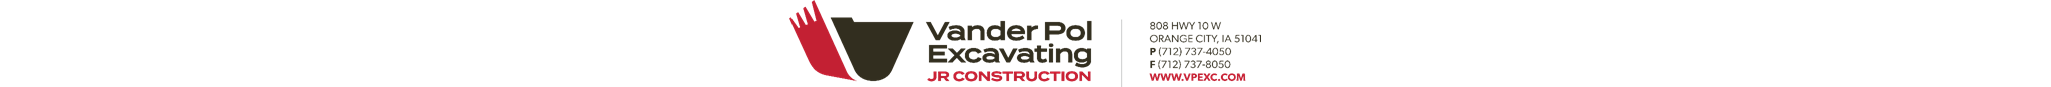 Vander Pol Excavating - Northwest Iowa